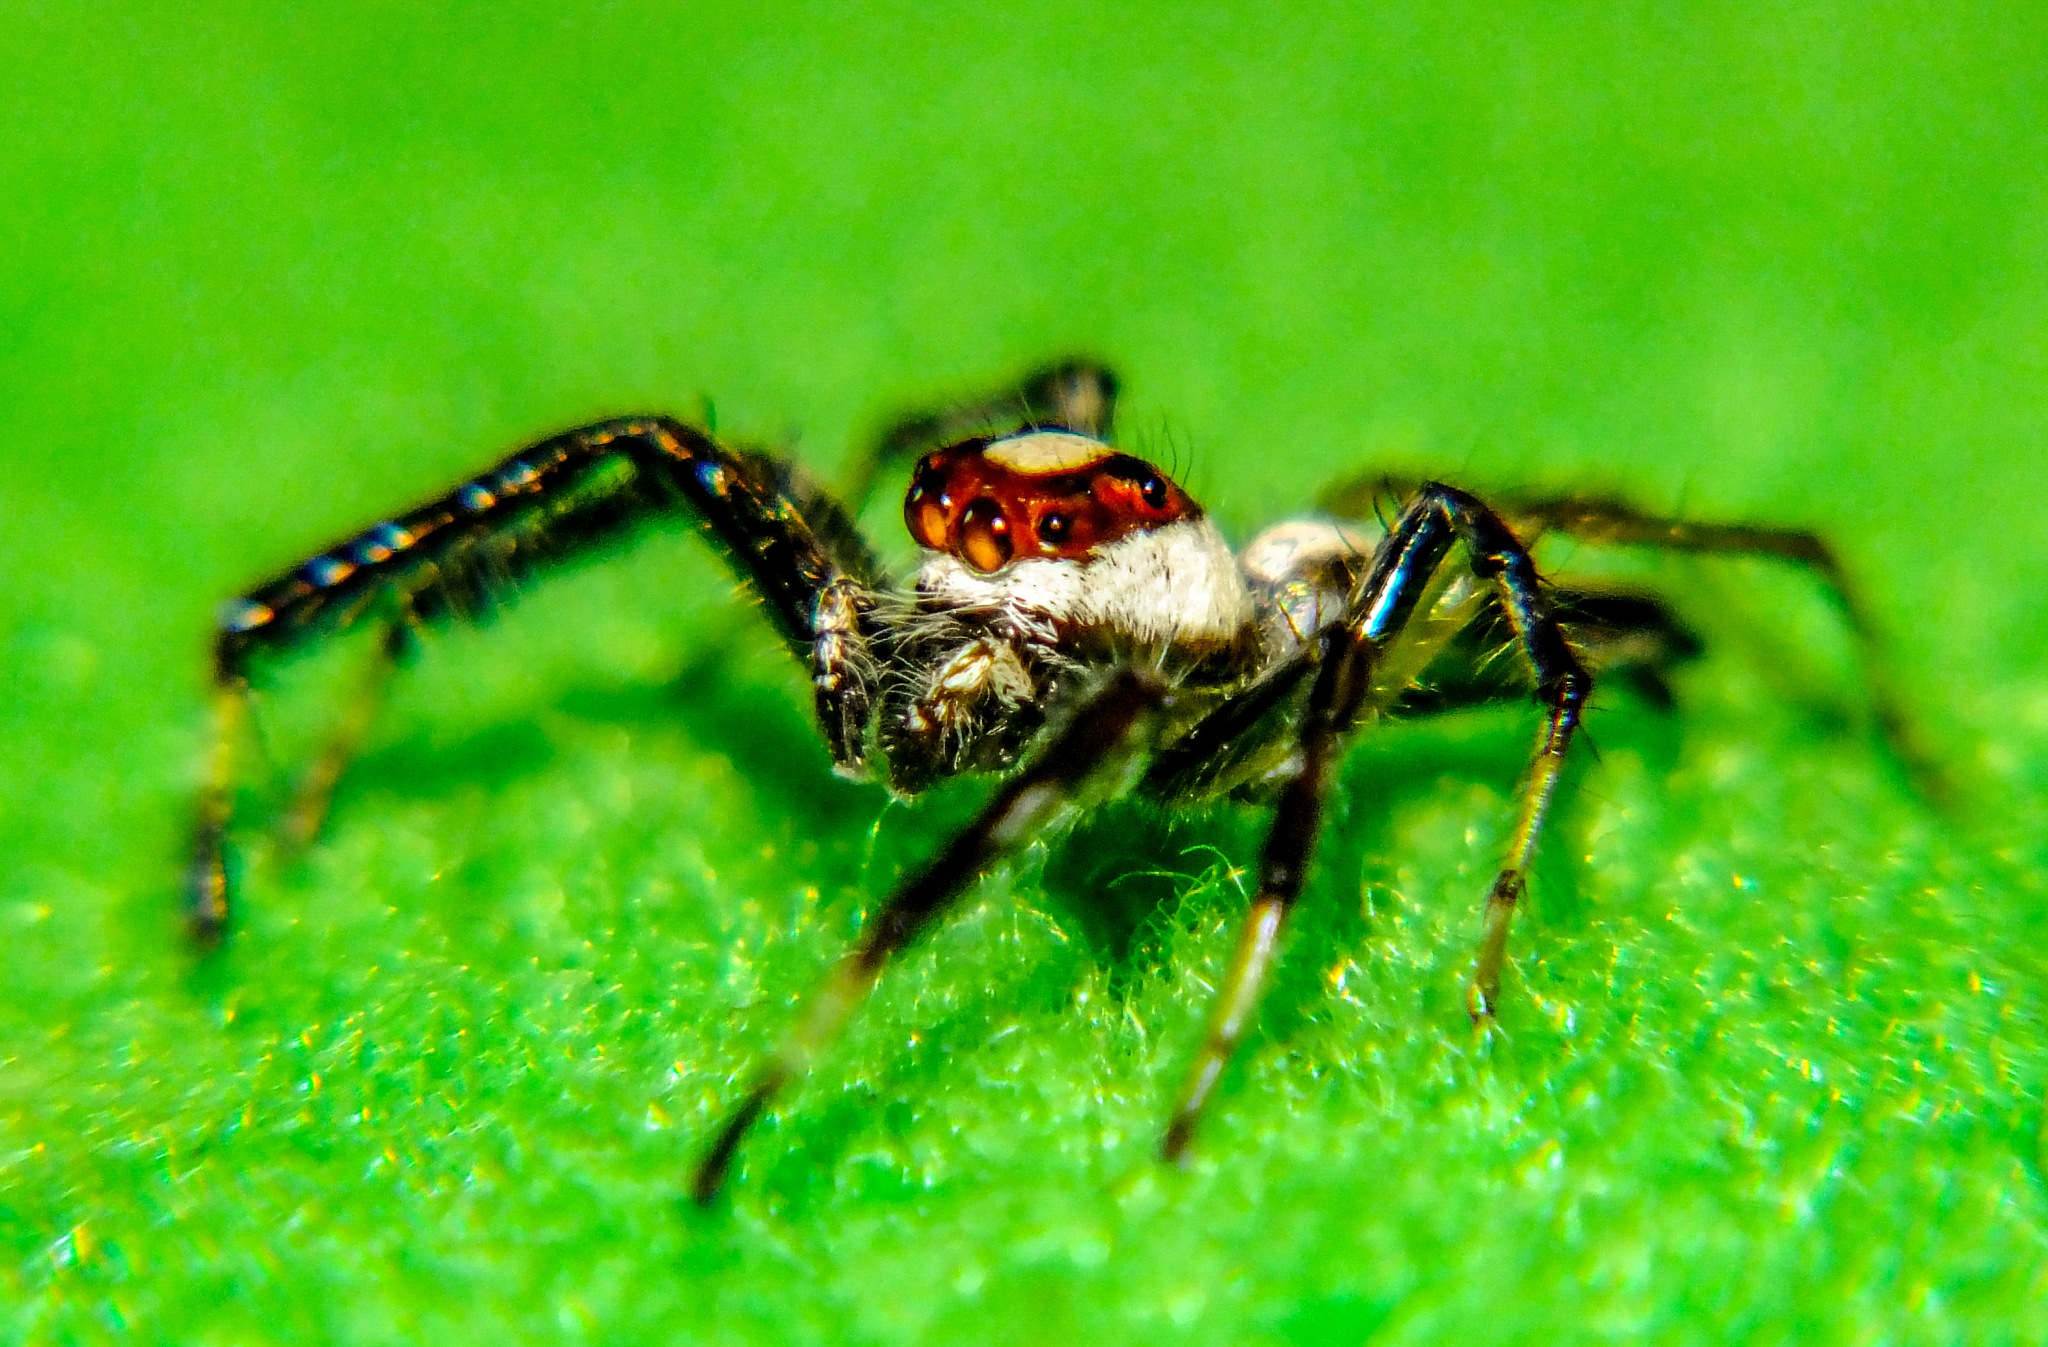 Jumping Spider by Firman OS